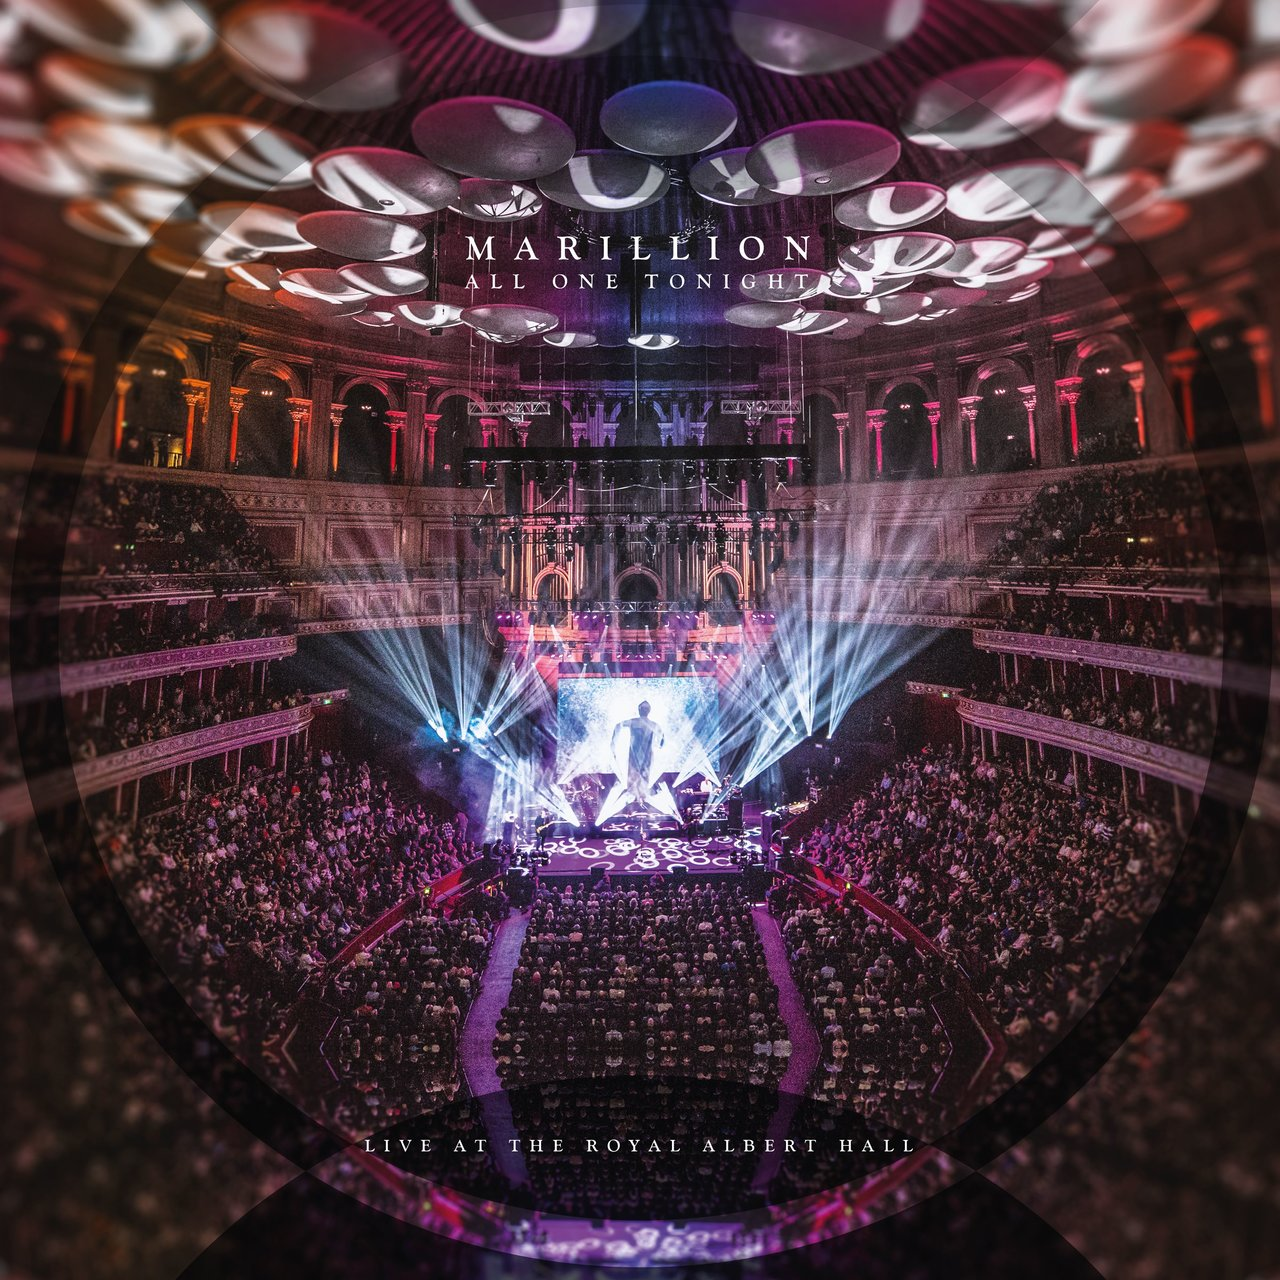 All One Tonight [Live at the Royal Albert Hall]